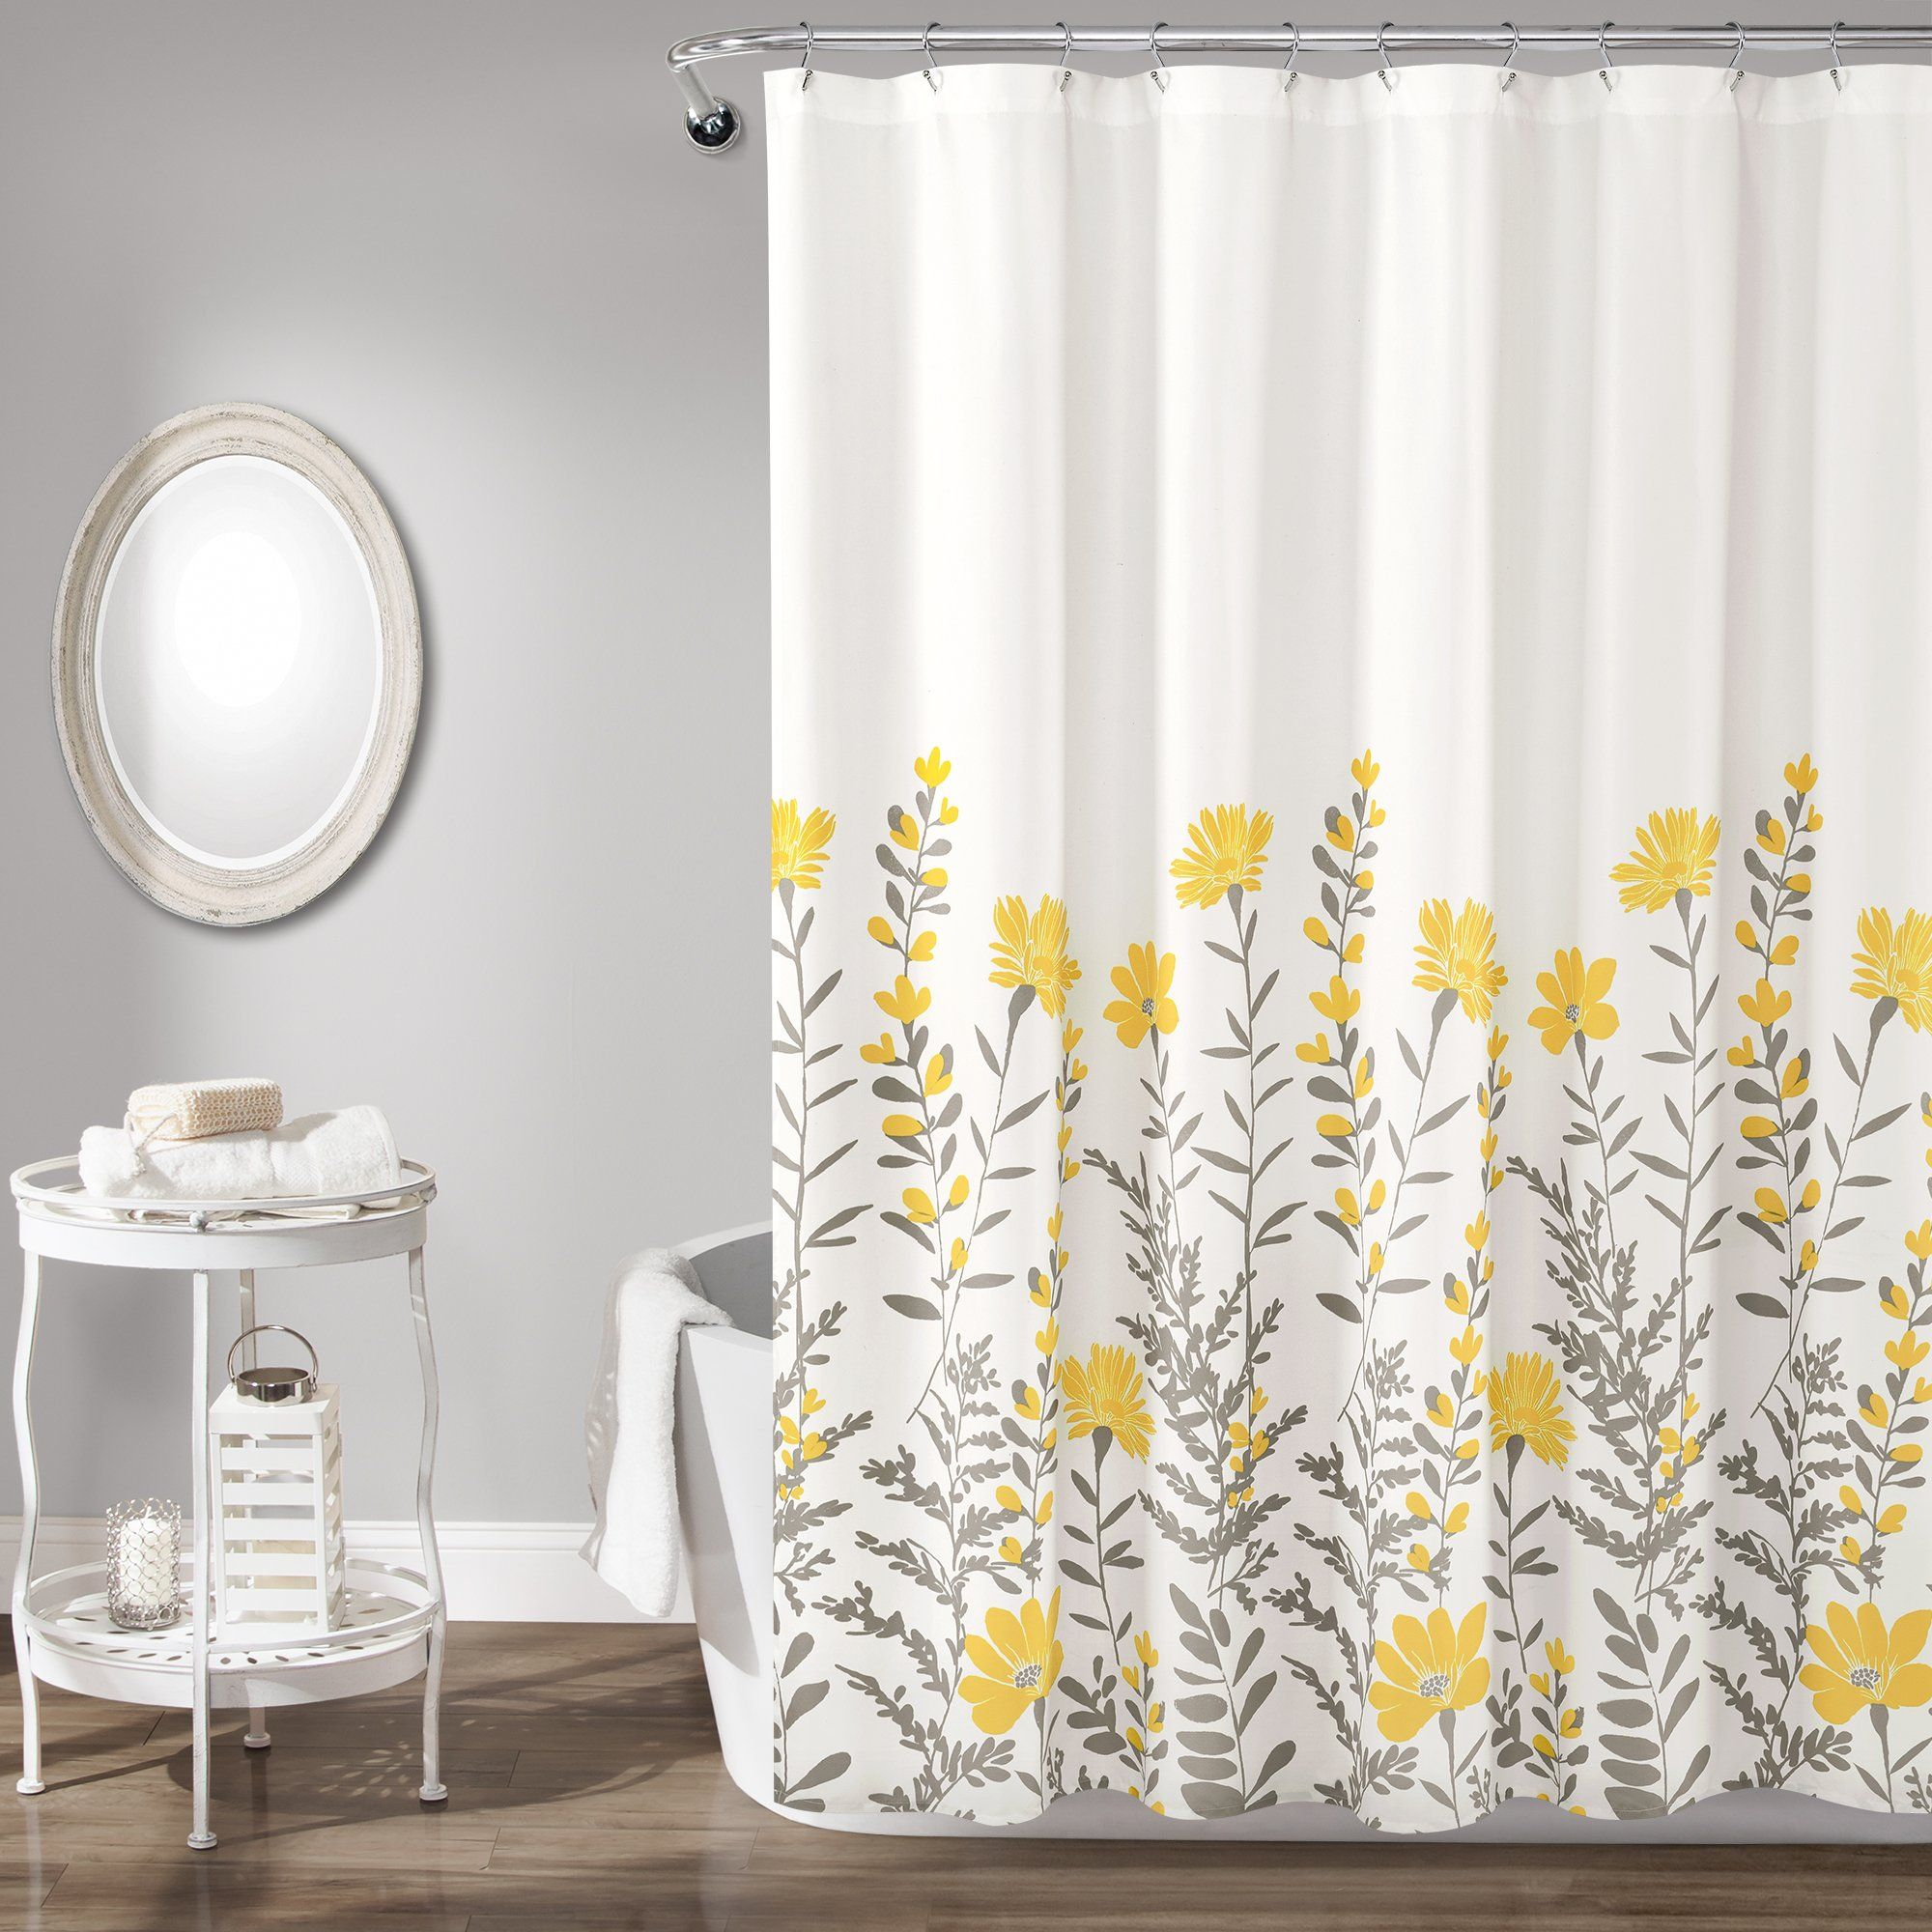 Aprile Shower Curtain In 2020 Yellow Shower Curtains Flower